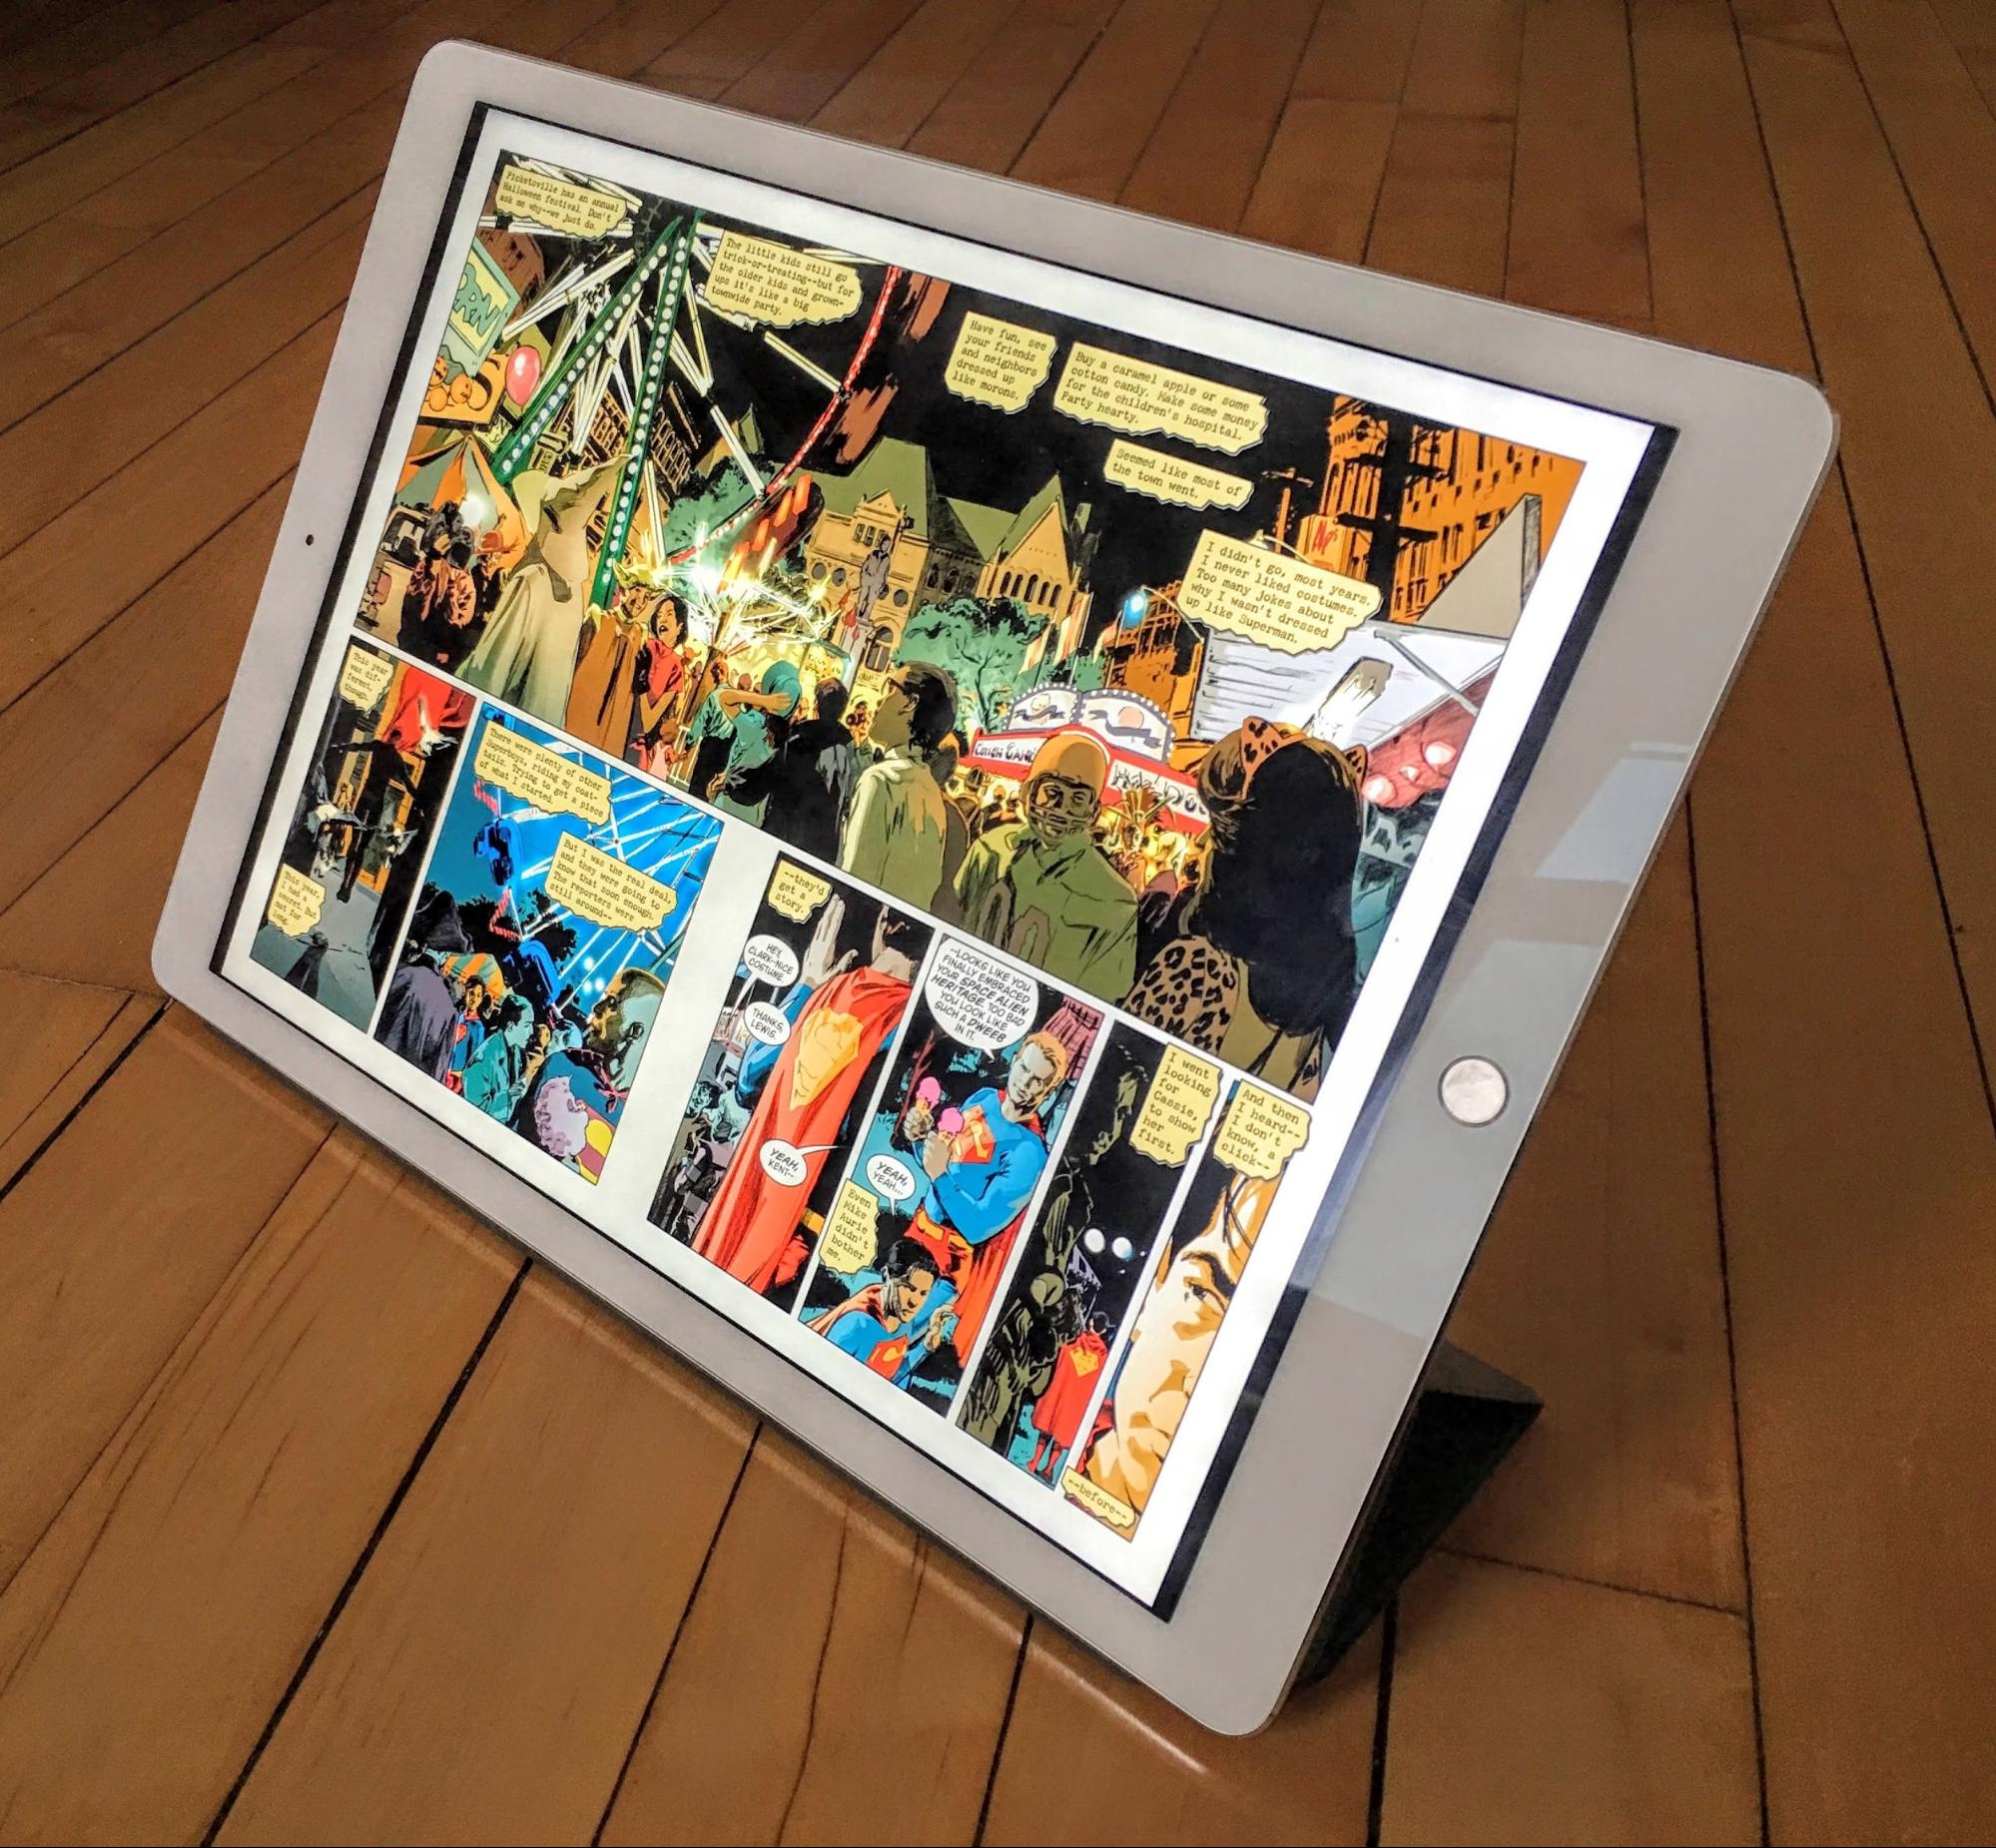 adobe illustrator for ipad pro 12.9